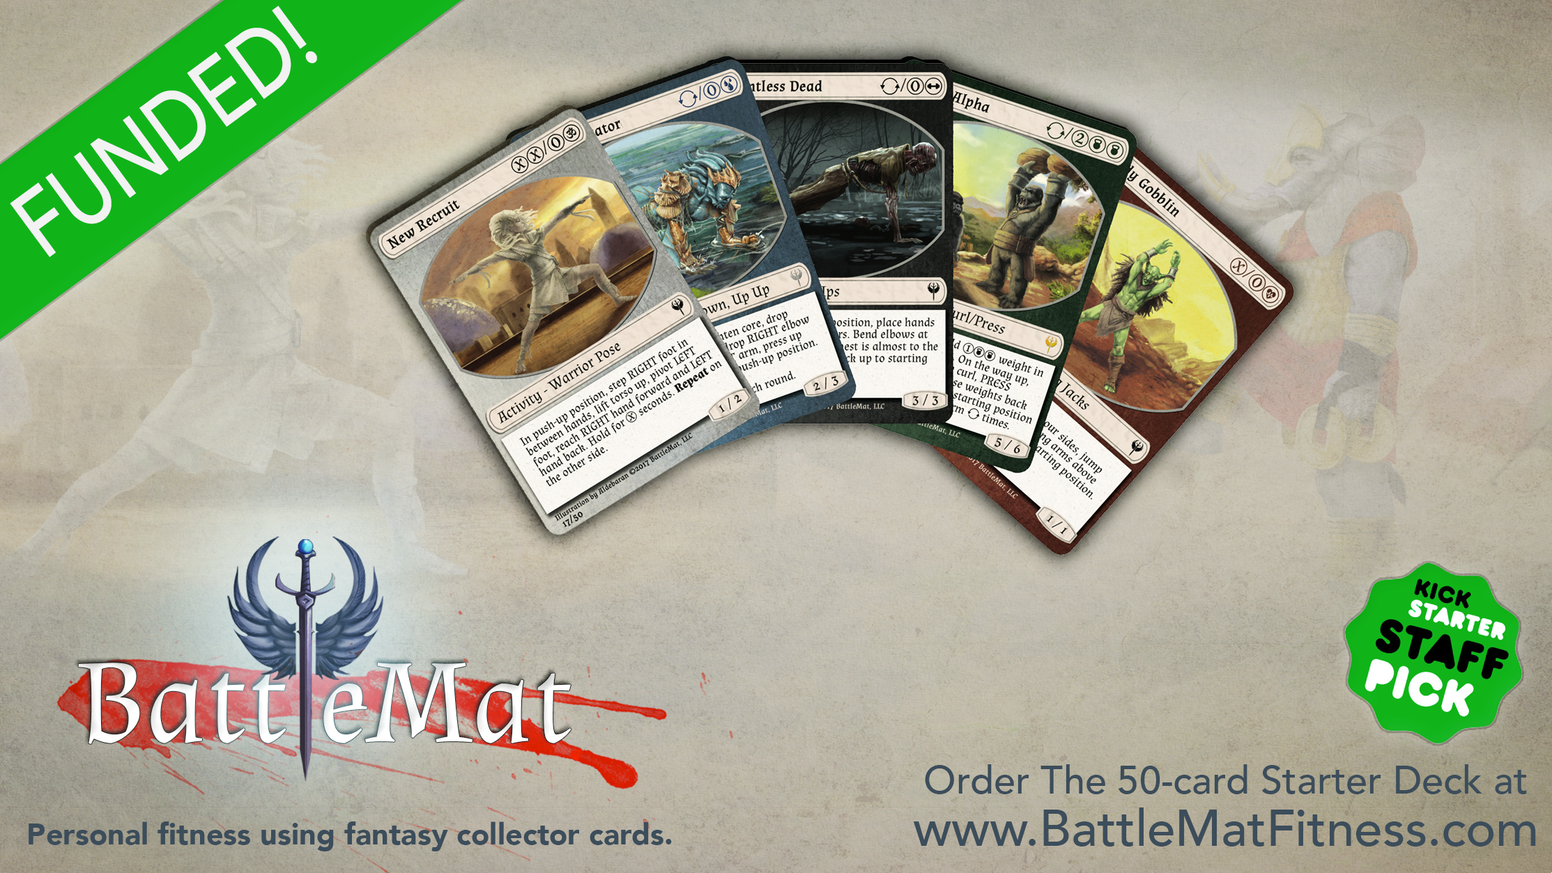 BattleMat is a personal training program that uses fantasy card game strategies and lore to guide your fitness journey!